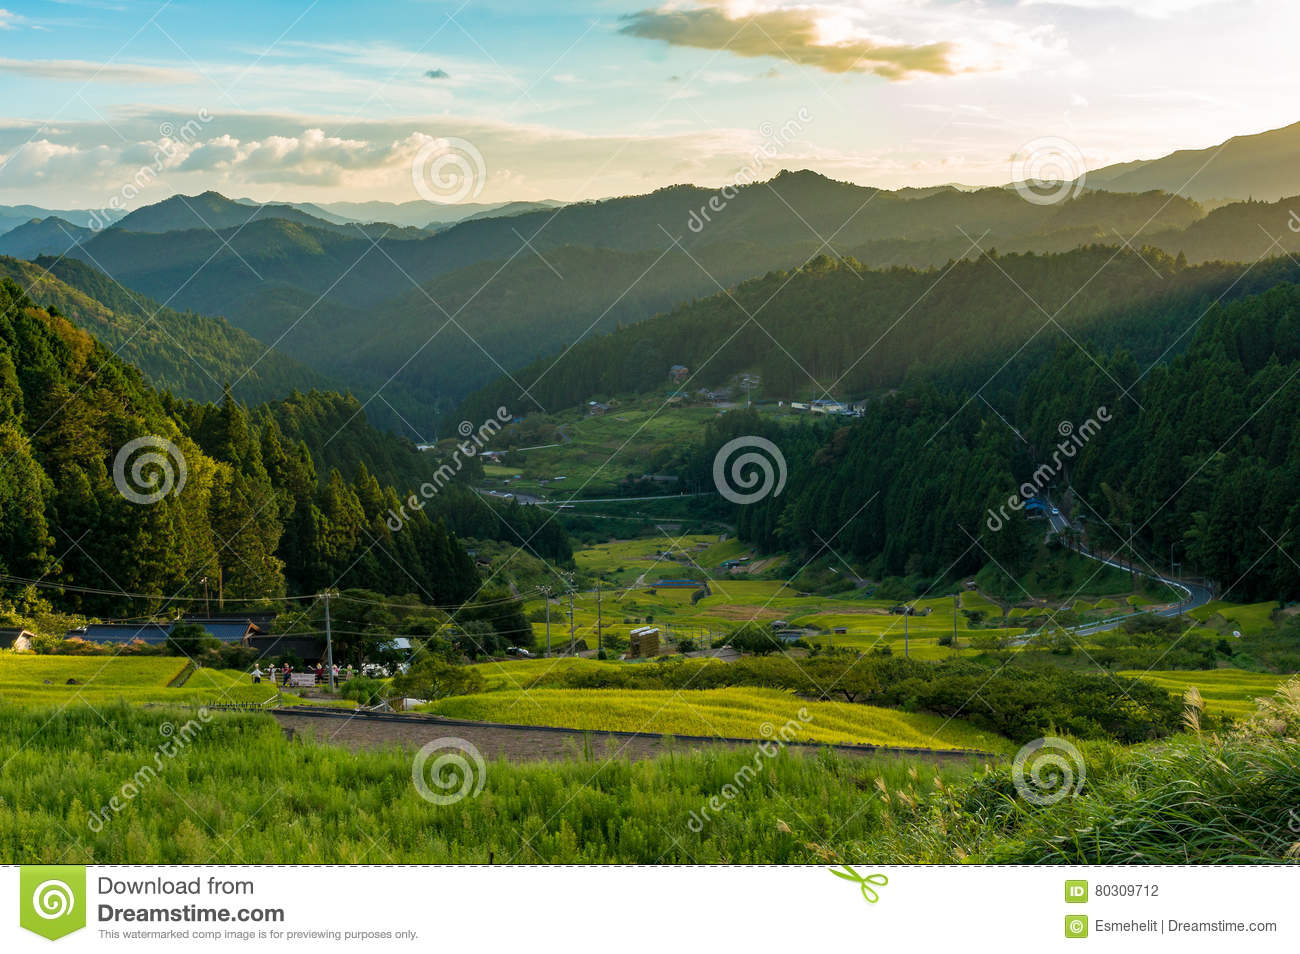 Sunset over Japanese countryside with mountains and rice fields